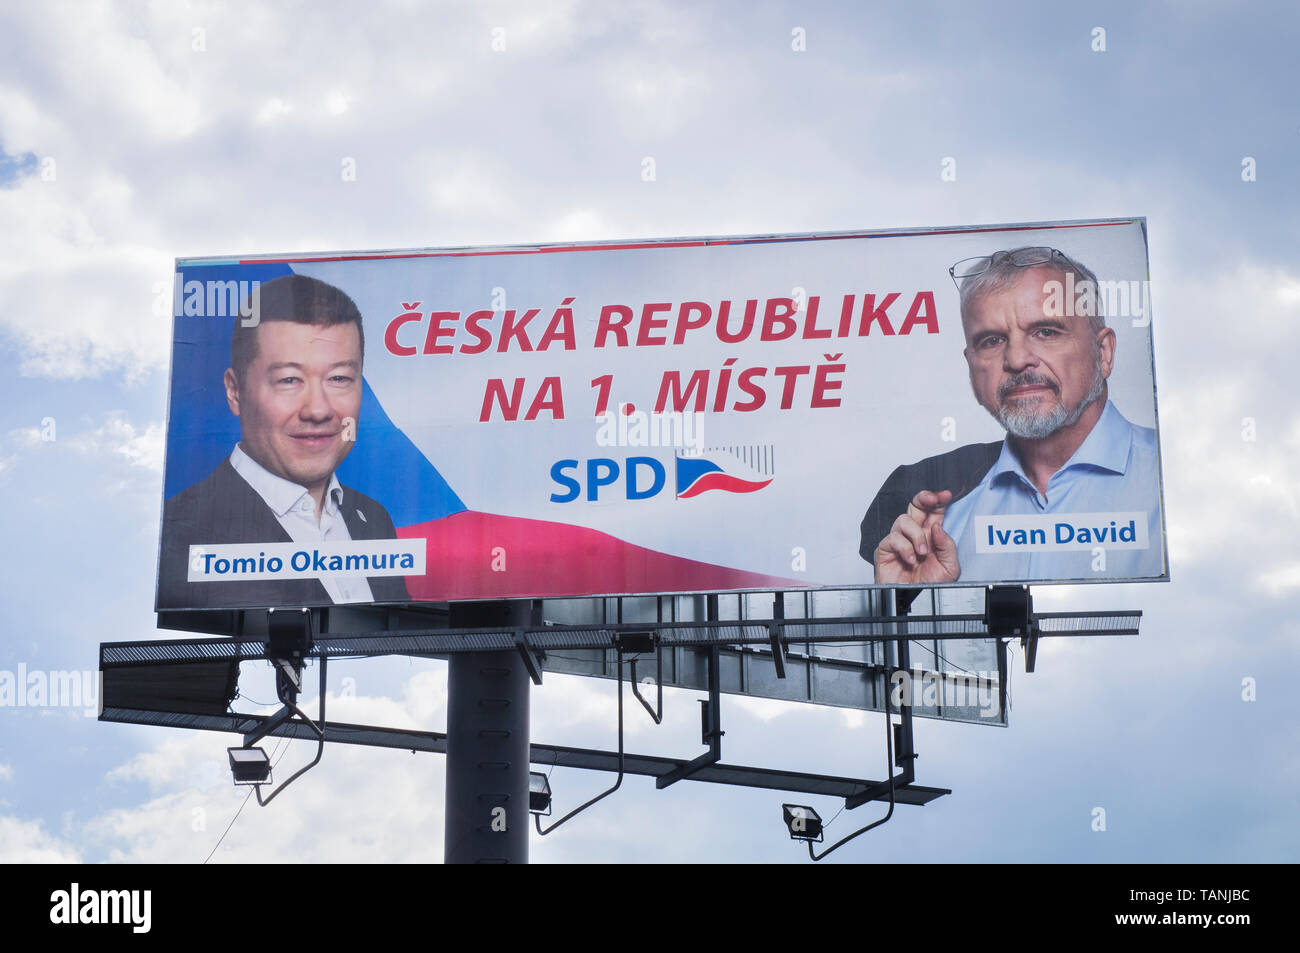 Billboard of SPD (Freedom and Direct Democracy), Tomio Okamura and Ivan David, pre-election campaign for 2019 European Parliament election in Ceske Bu - Stock Image